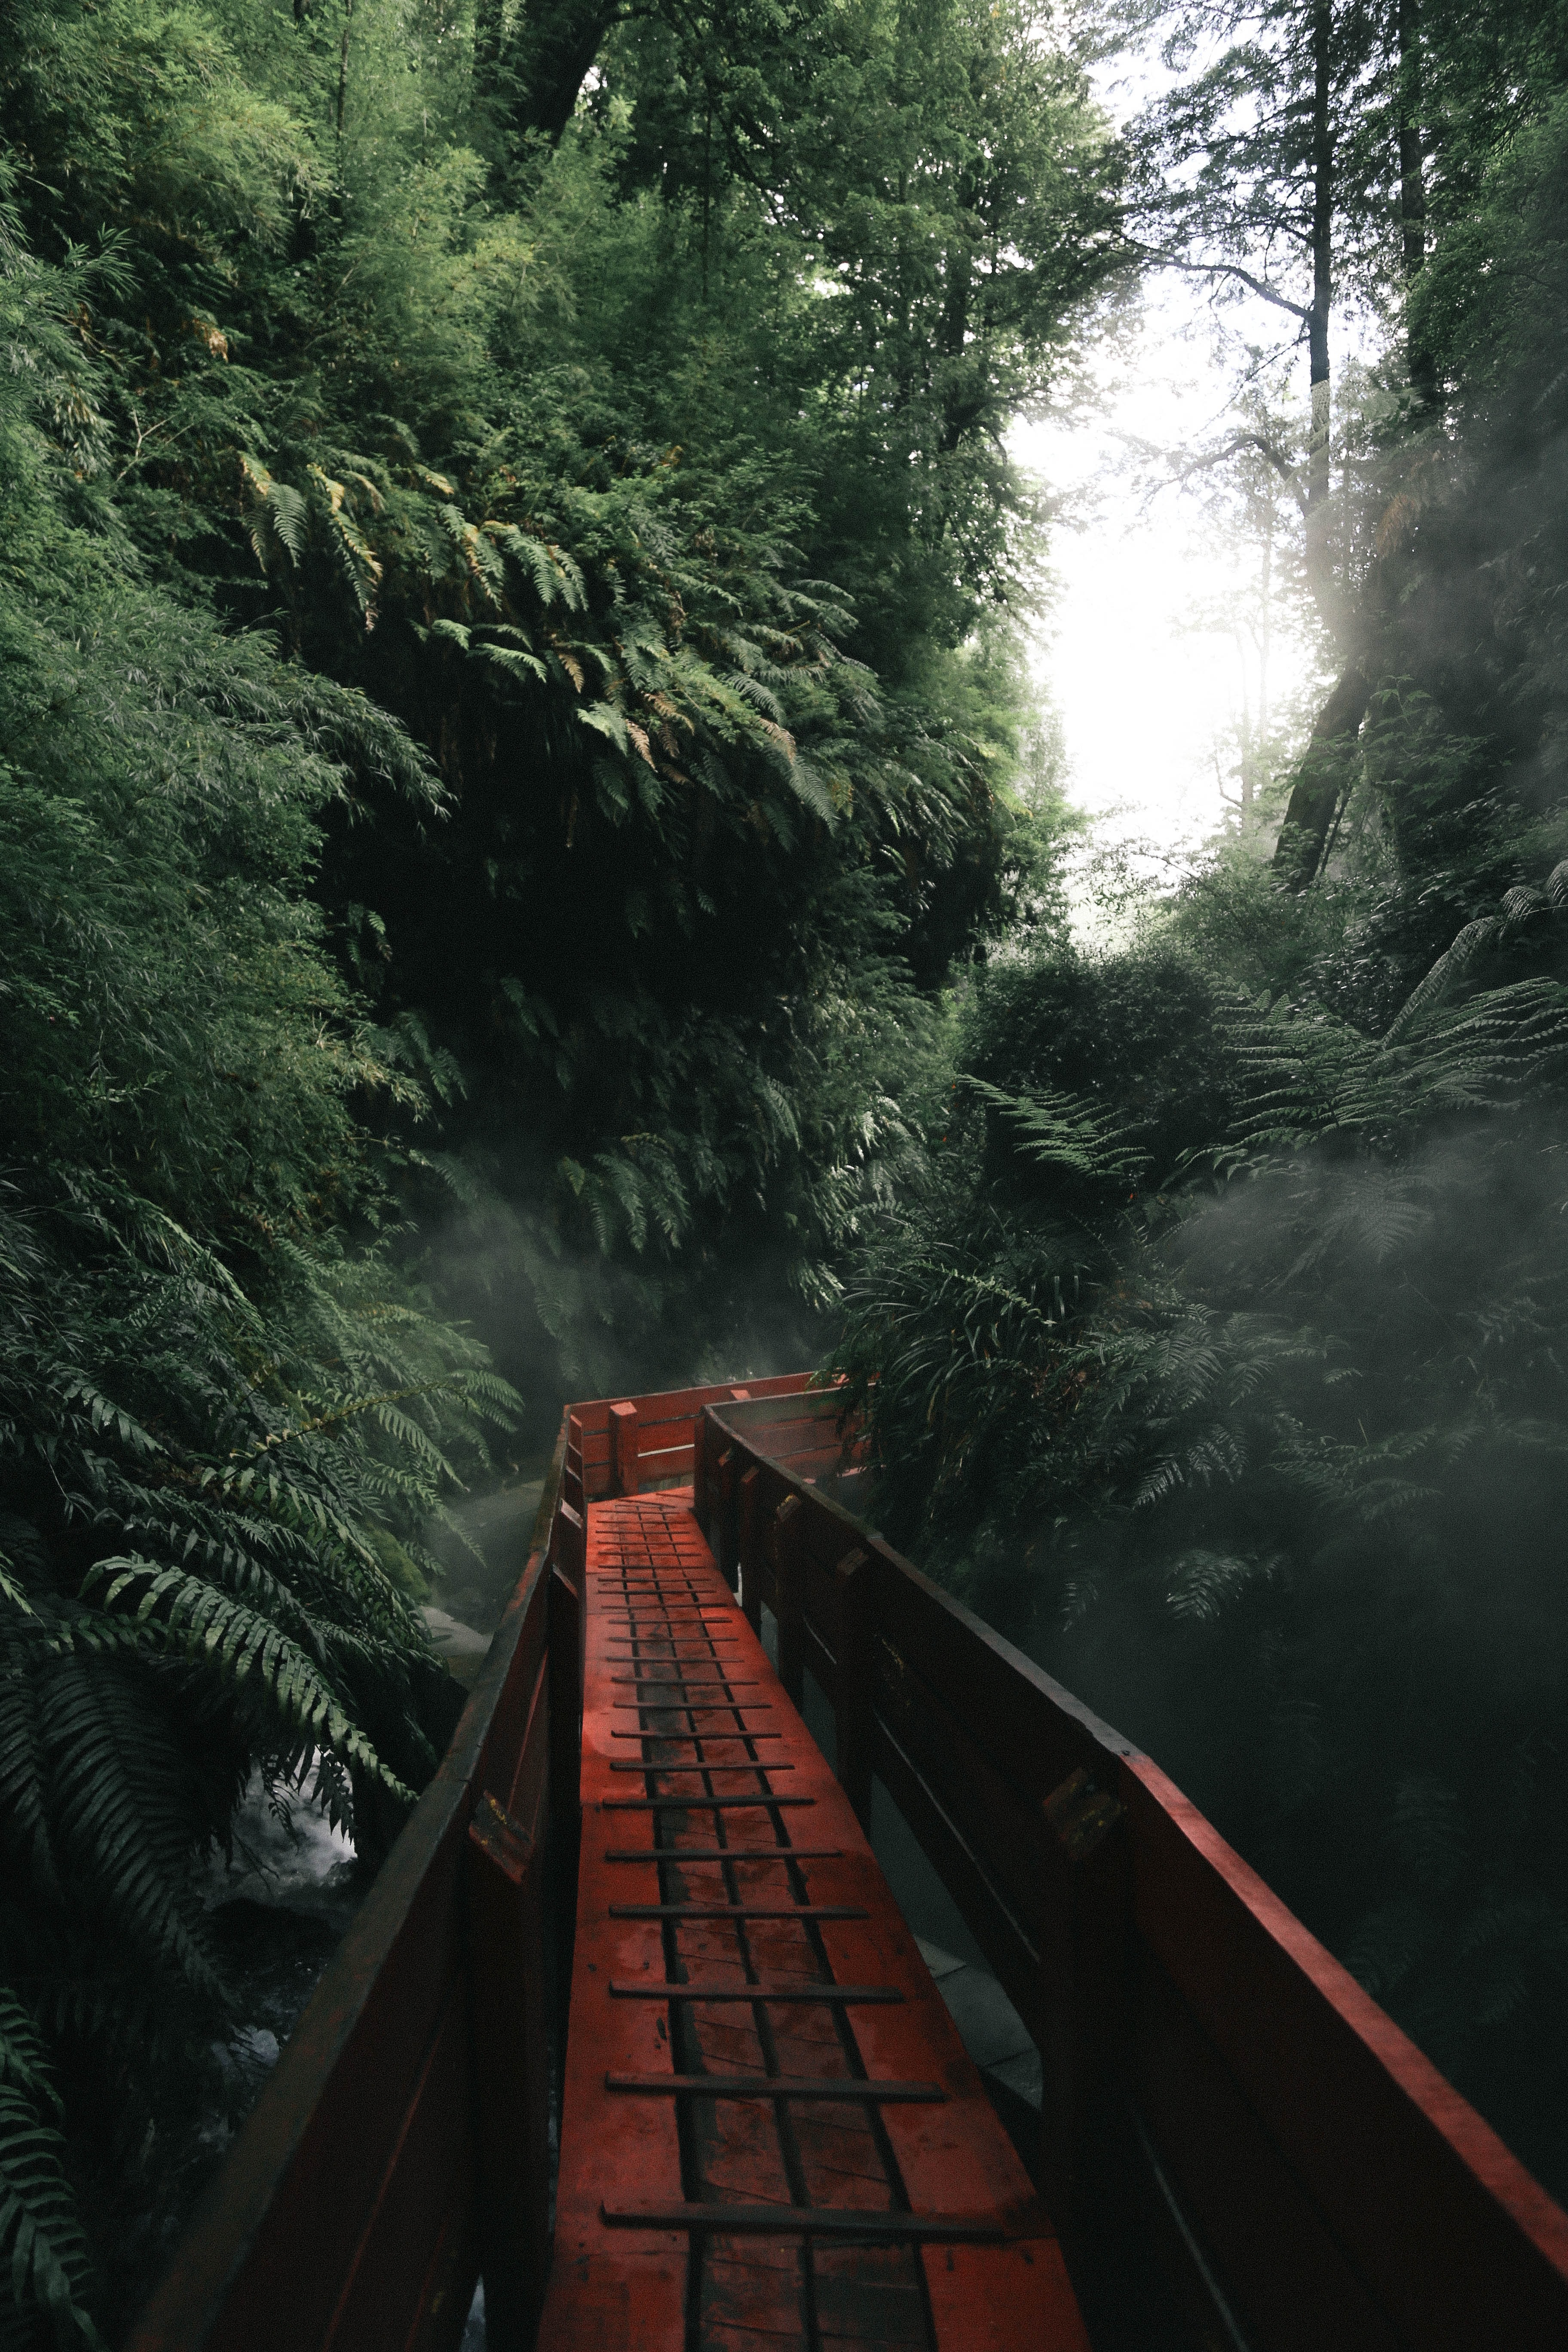 A red walking pathway that travels through a heavily treed forest.